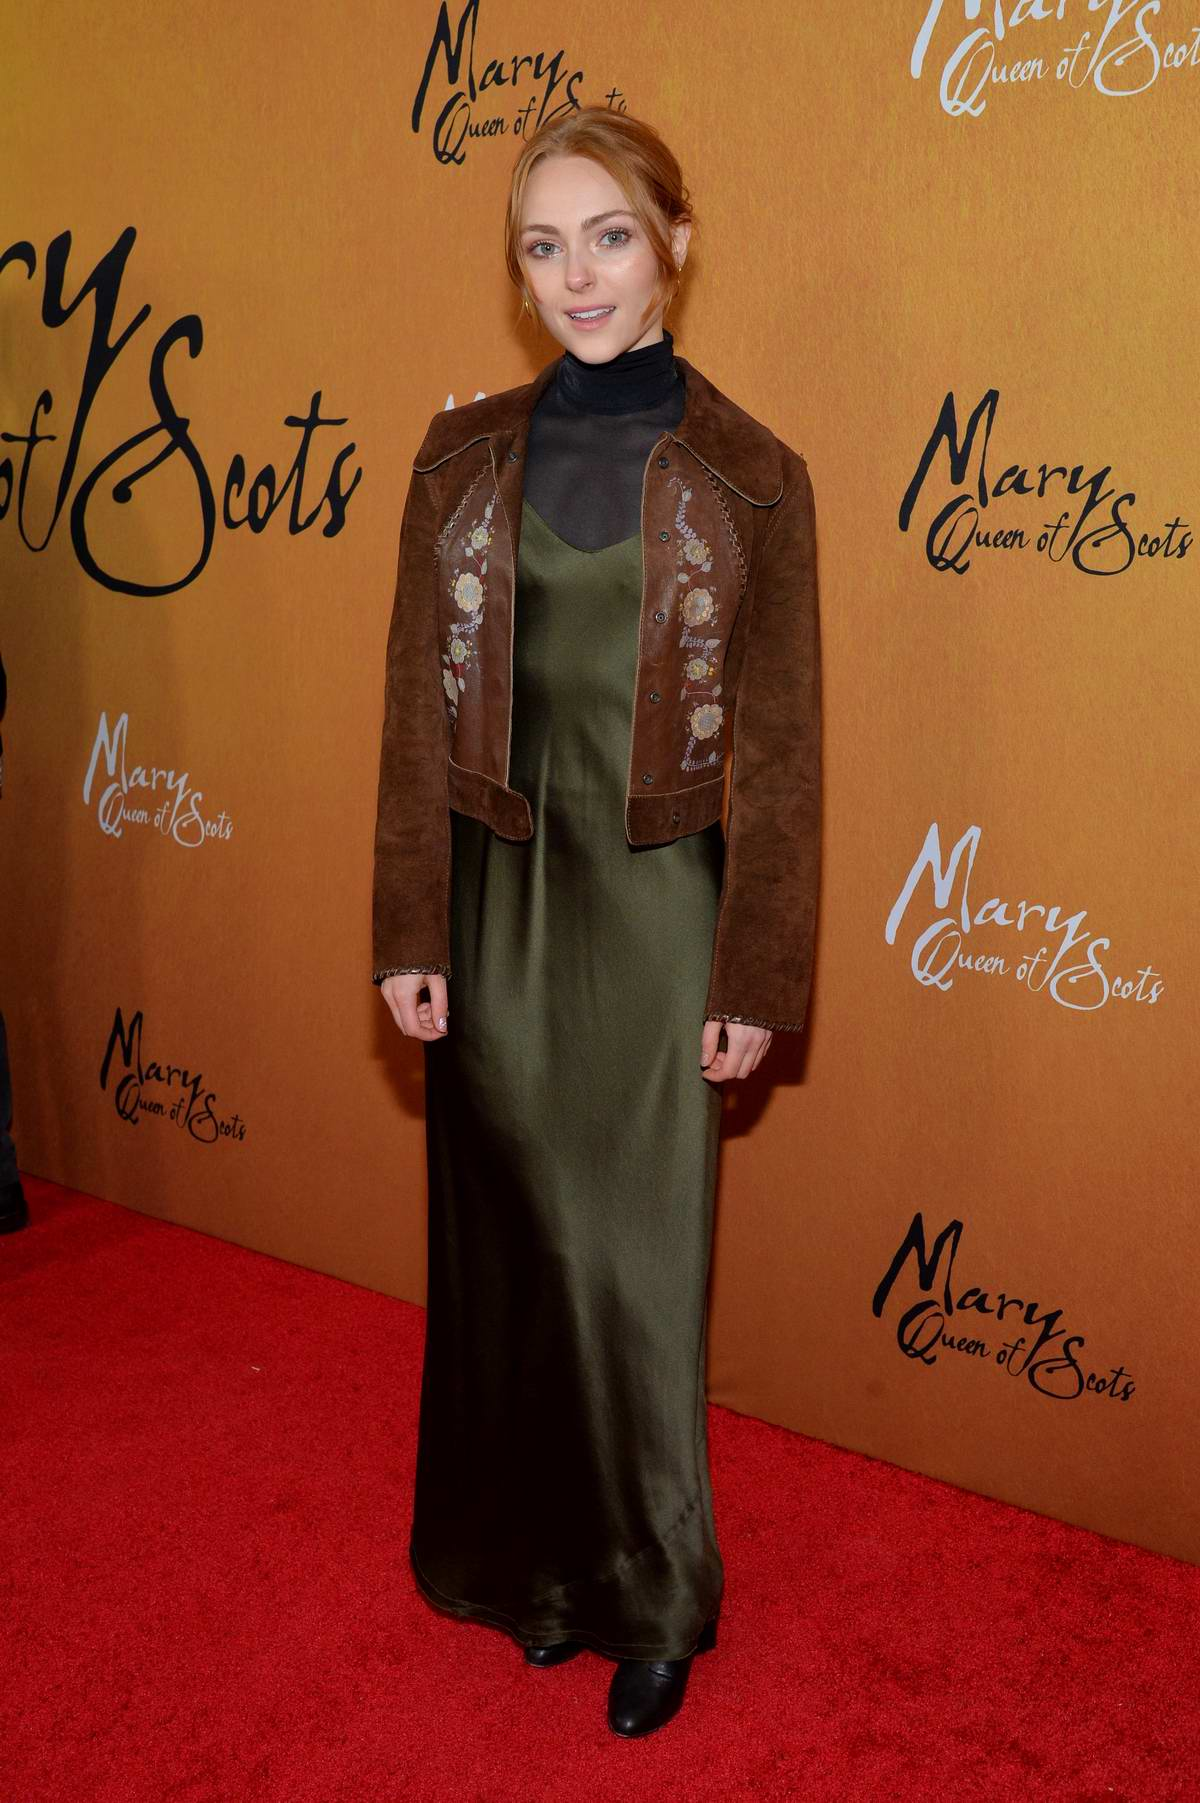 AnnaSophia Robb attends 'Mary, Queen of Scots' film premiere in New York City